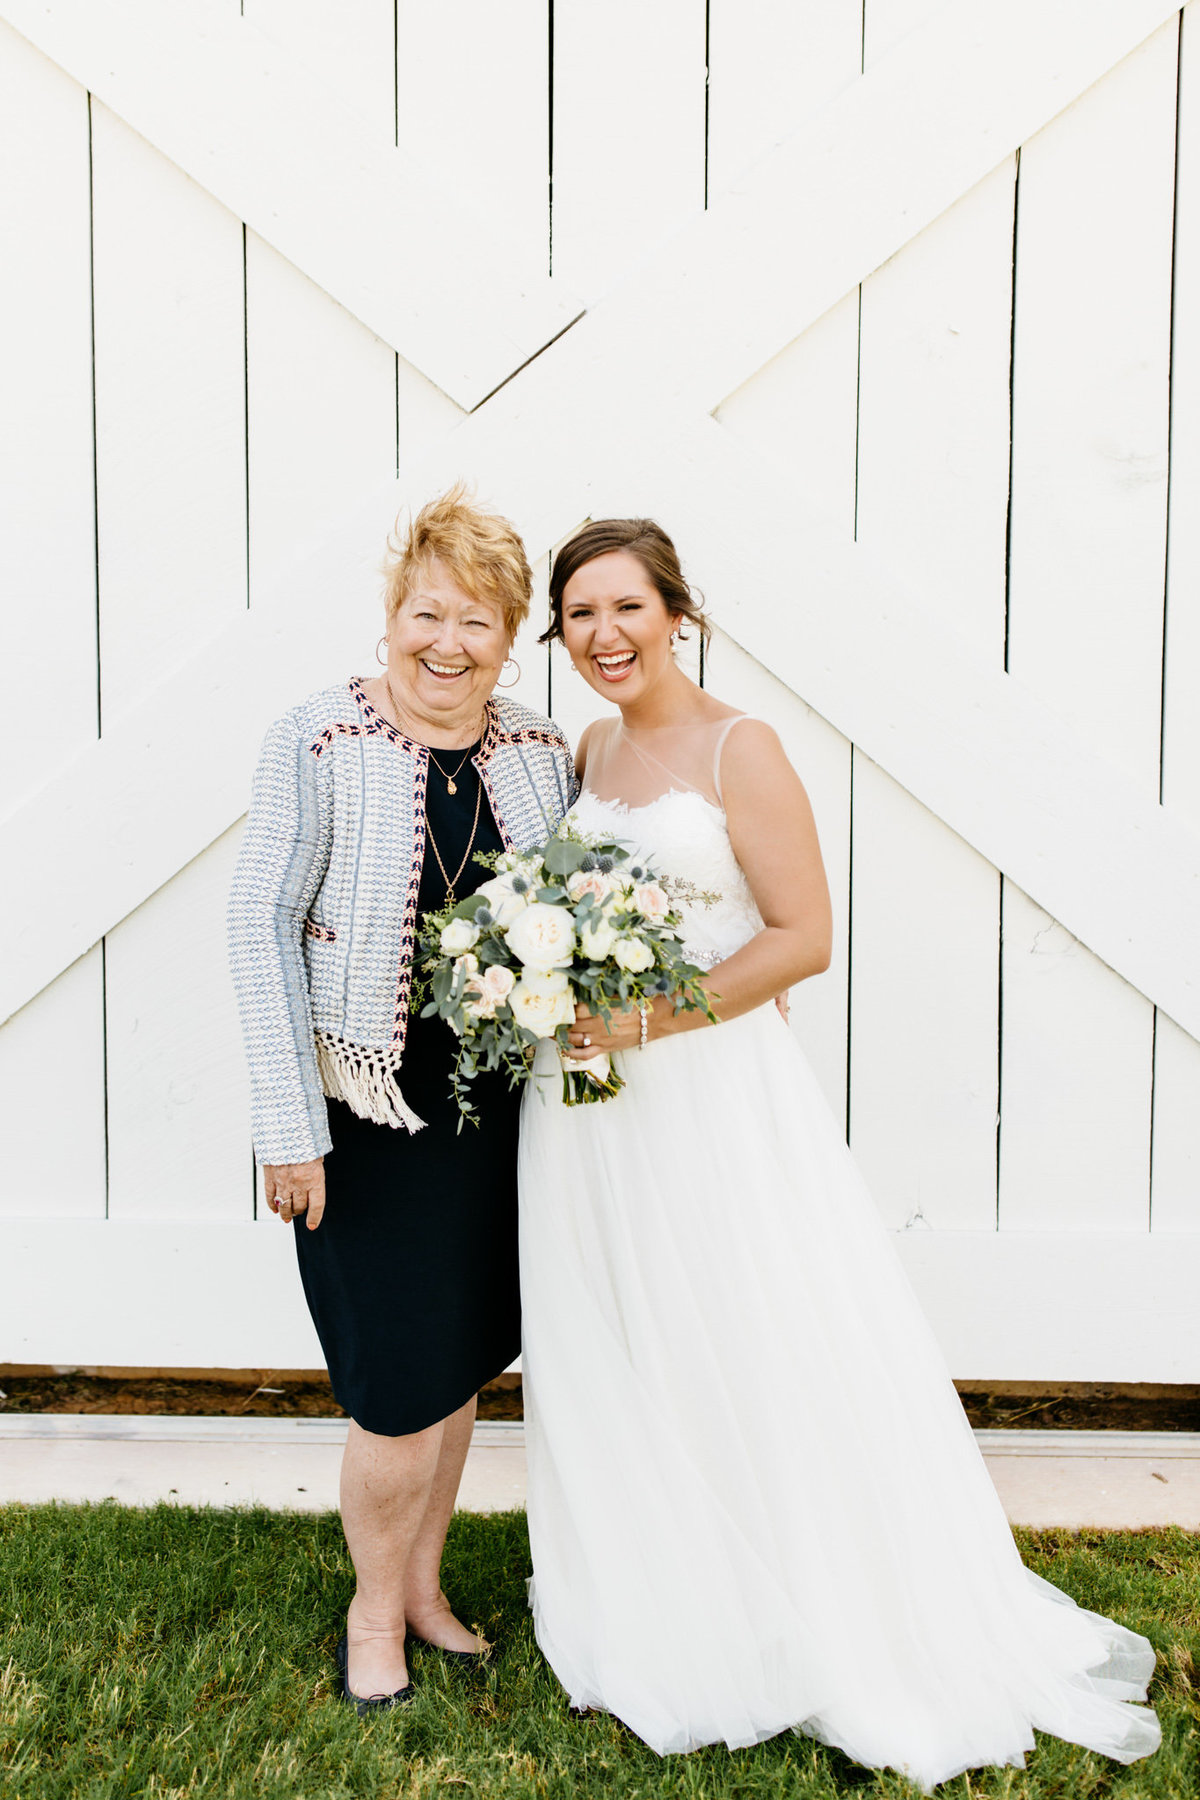 Alexa-Vossler-Photo_Dallas-Wedding-Photographer_North-Texas-Wedding-Photographer_Stephanie-Chase-Wedding-at-Morgan-Creek-Barn-Aubrey-Texas_33